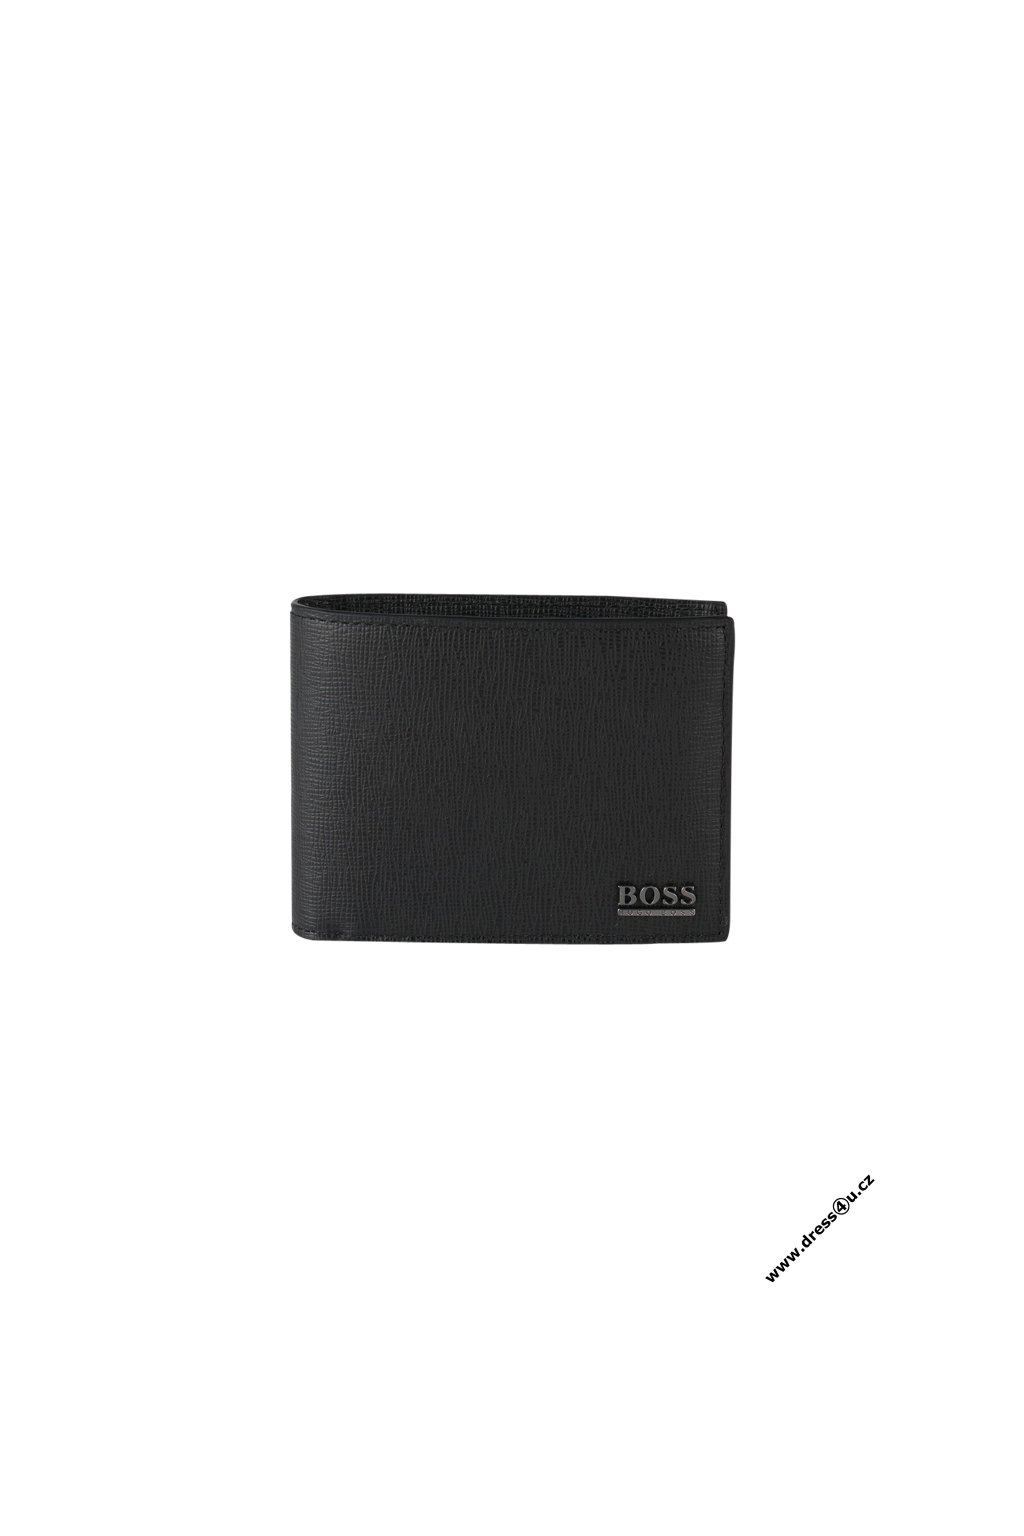 Leather Wallet Mesul Black B 3920